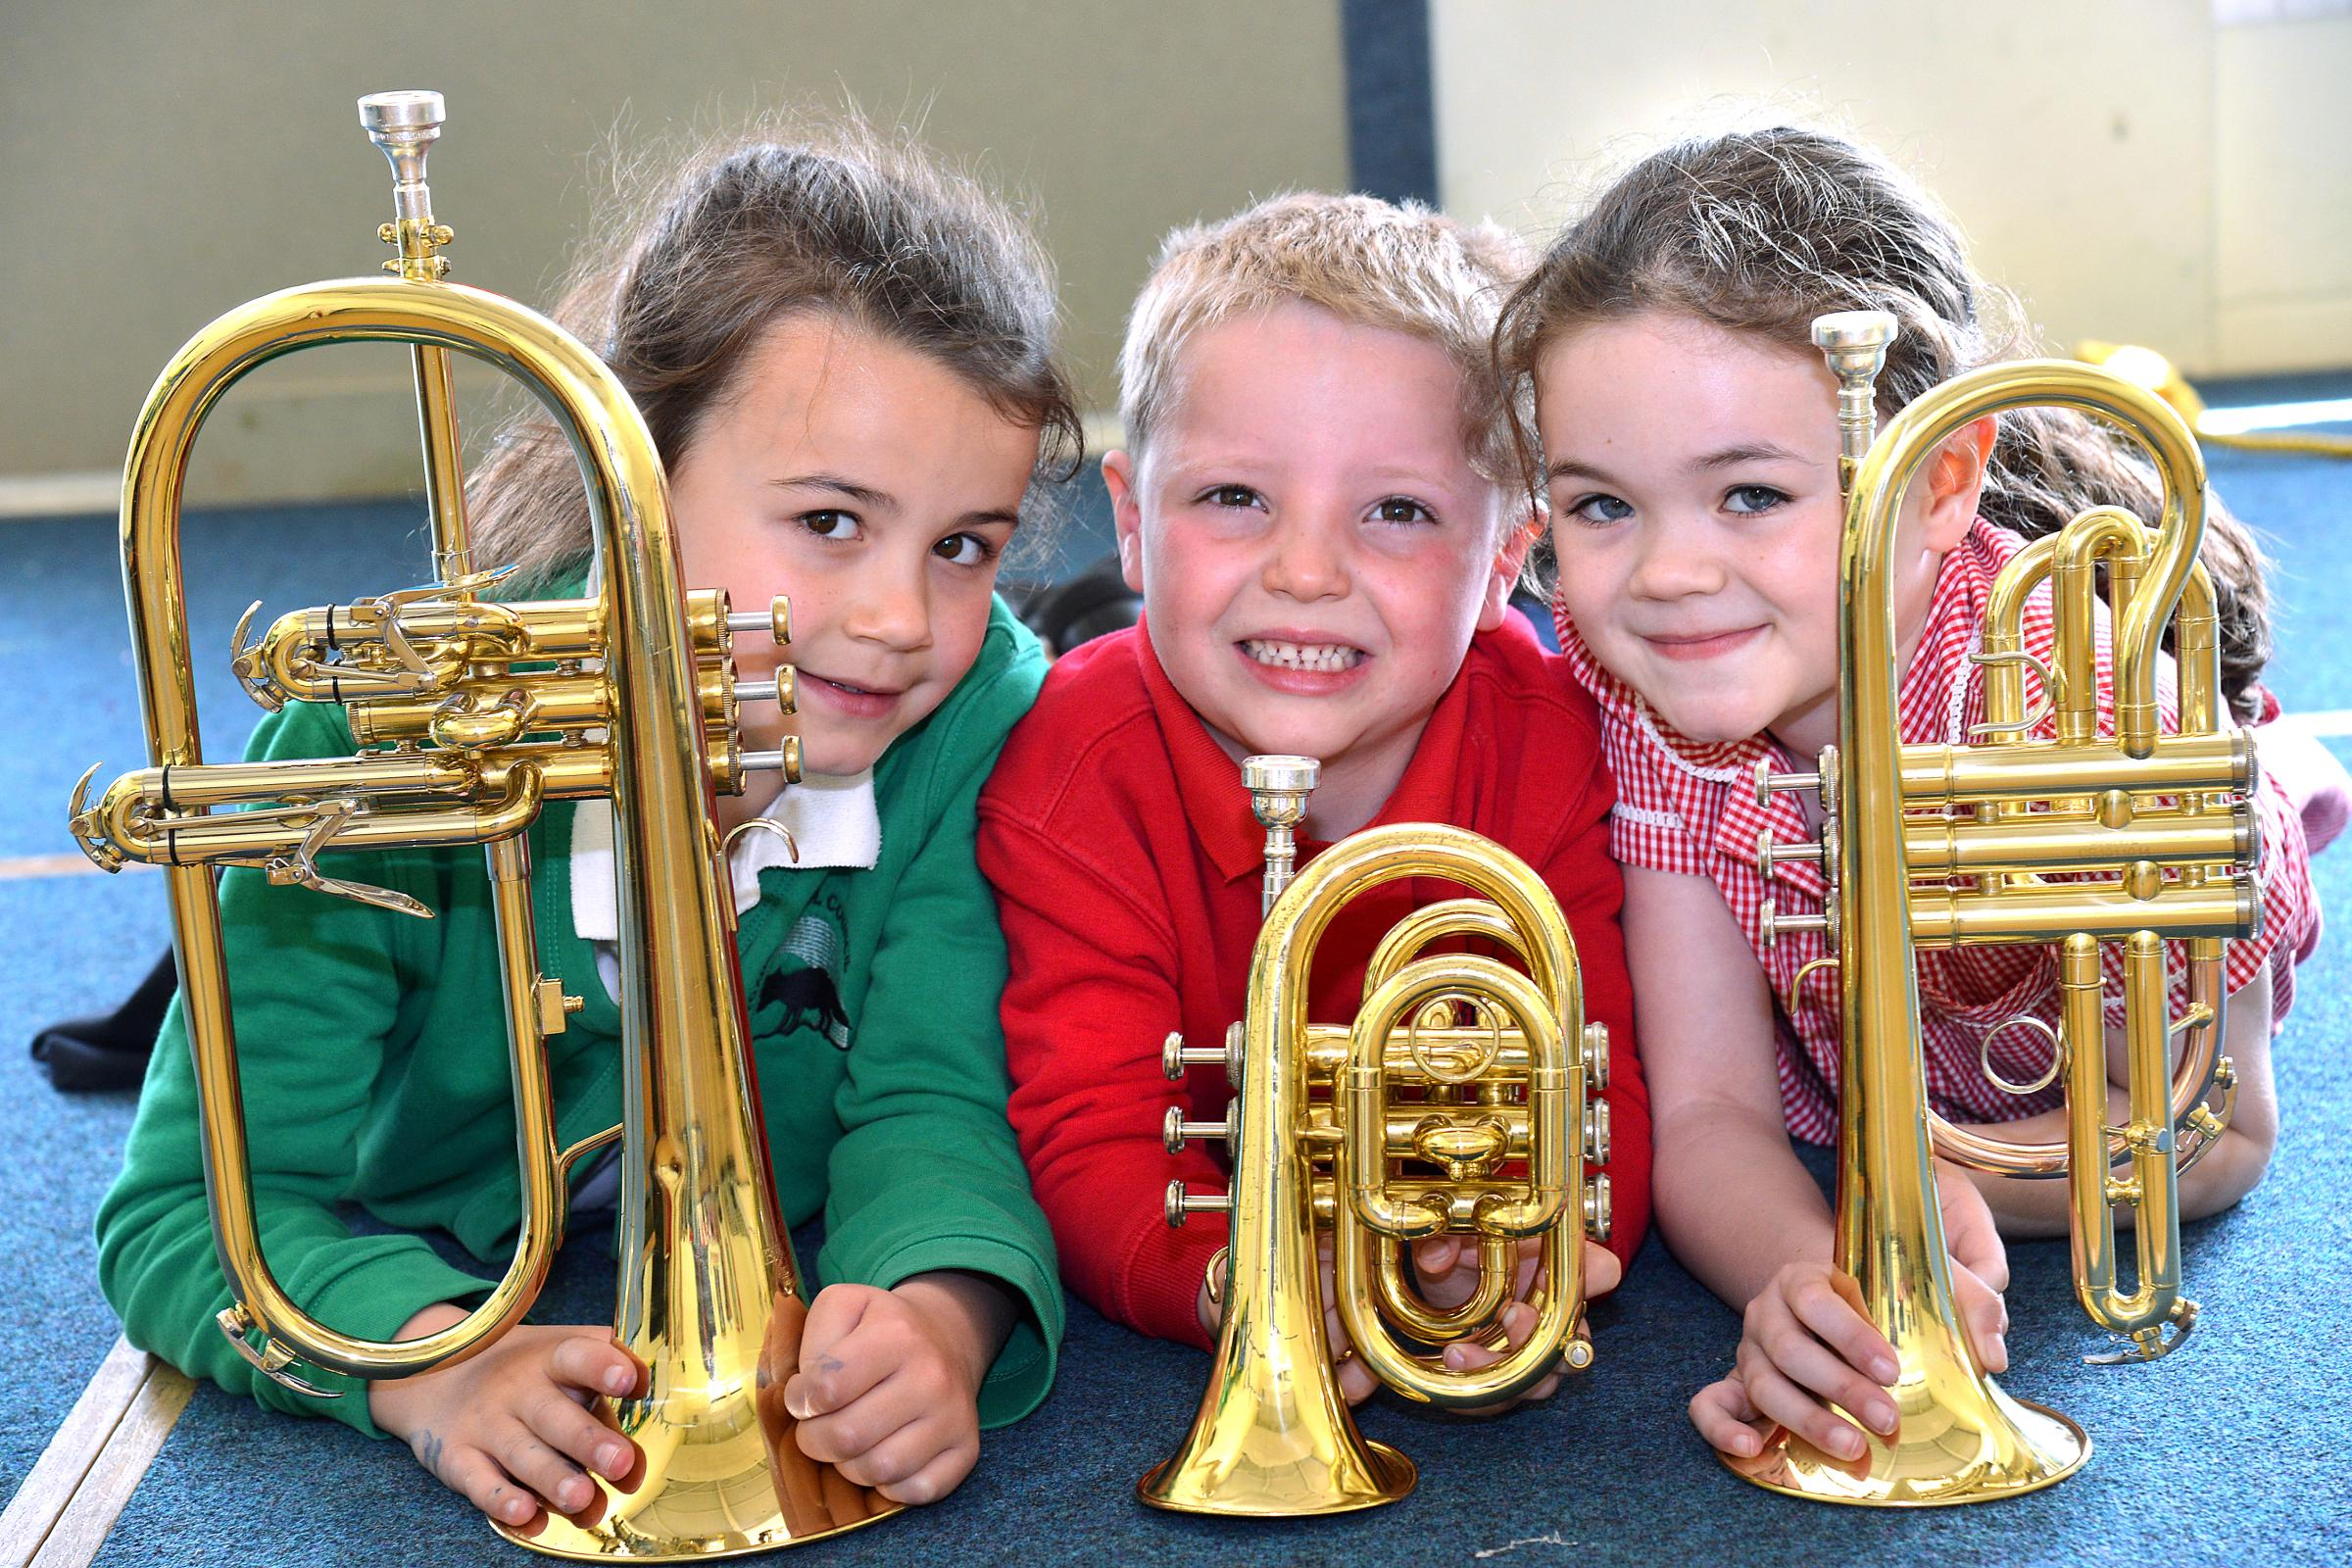 Foxhill Primary School pupils with their donated brass instruments after an appeal in the T&A